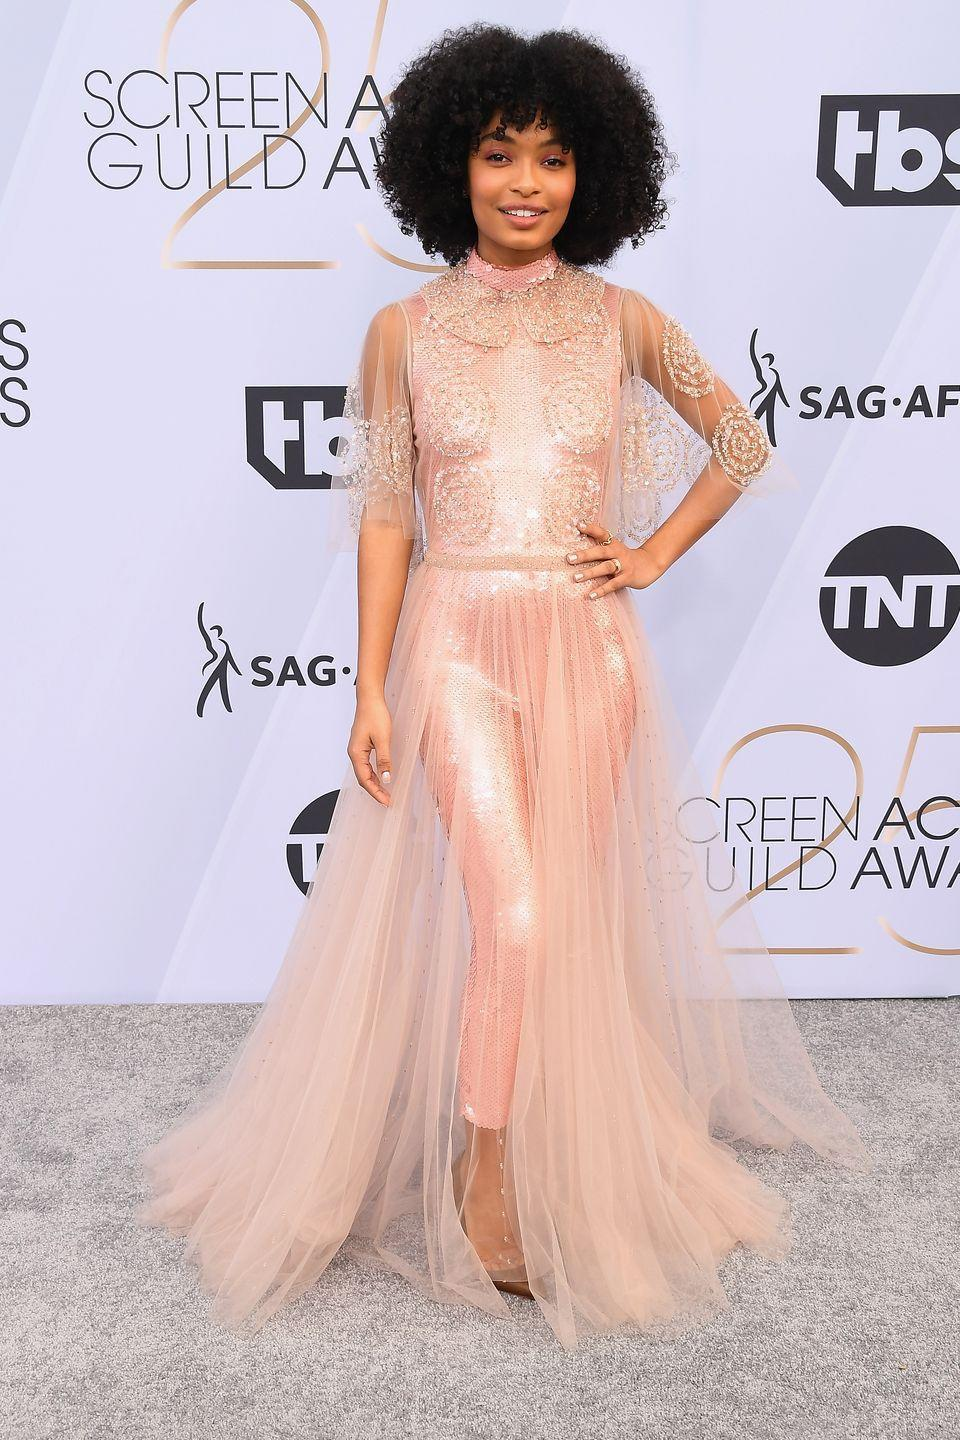 """<p>One of the easiest hairstyles for natural hair is a simple wash-and-go, like the one actress <strong>Yara Shahidi</strong> is sporting here. To achieve this look, wash and <a href=""""https://www.goodhousekeeping.com/beauty-products/g26212823/best-conditioner-for-dry-hair/"""" rel=""""nofollow noopener"""" target=""""_blank"""" data-ylk=""""slk:condition your hair"""" class=""""link rapid-noclick-resp"""">condition your hair</a> as usual and follow up with your favorite <a href=""""https://www.goodhousekeeping.com/beauty/hair/g28799272/best-hair-products/"""" rel=""""nofollow noopener"""" target=""""_blank"""" data-ylk=""""slk:styling products"""" class=""""link rapid-noclick-resp"""">styling products</a> for perfectly-defined spirals every single time. </p>"""